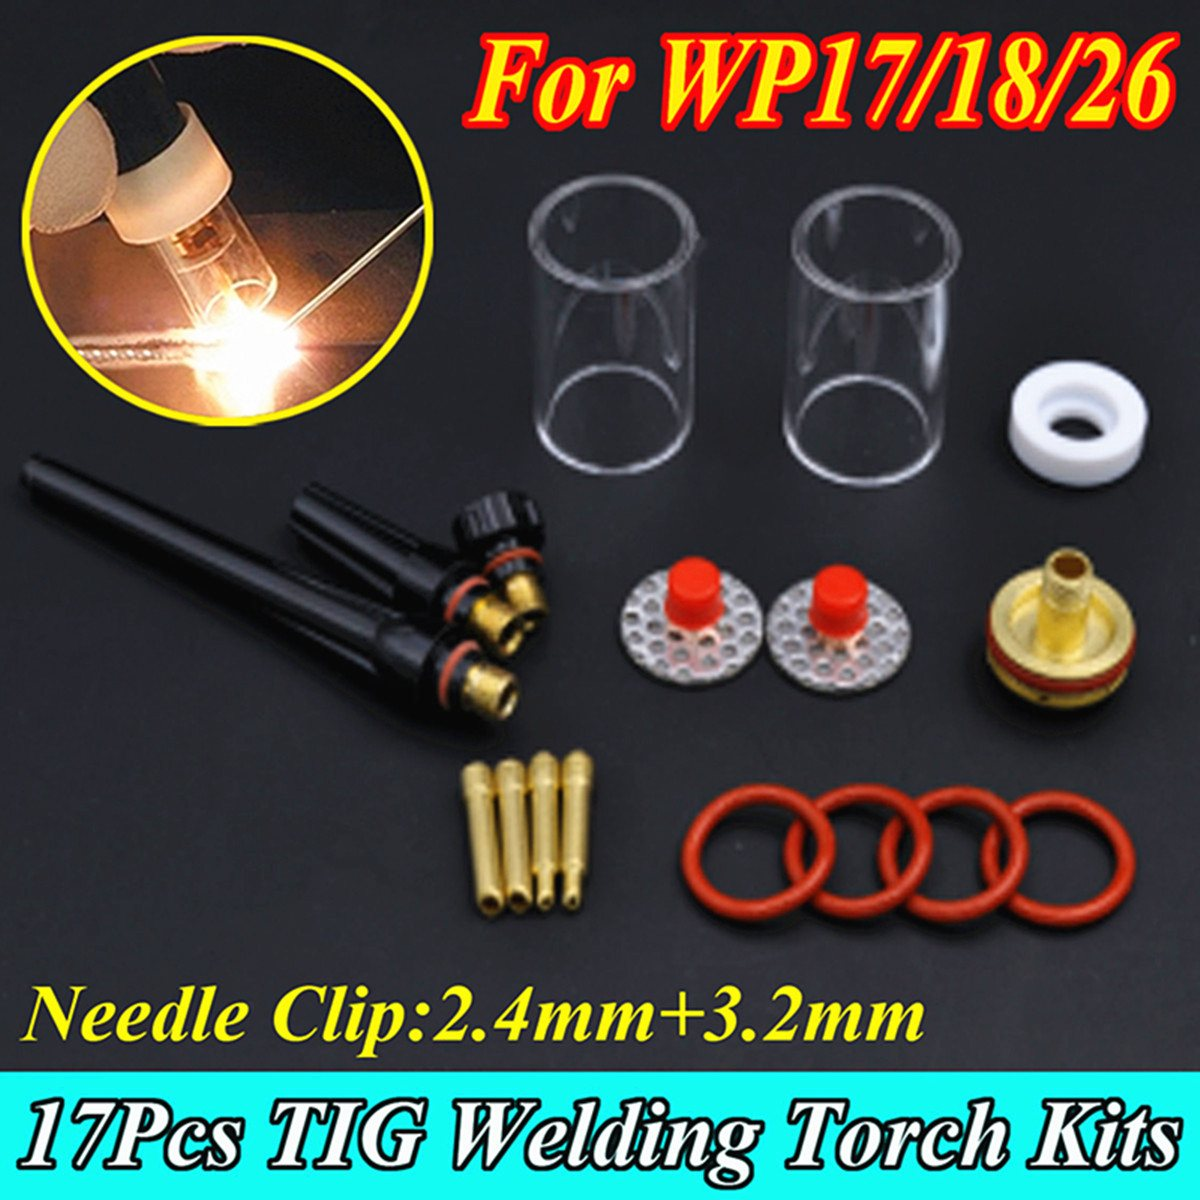 New 17PCS TIG Welding Torch Gas Lens Pyrex Glass Cup Stubby Collet FOR WP-17/18/26 Series Welding Accessories 2015 sale gas burner wp 17v sr 17v tig welding torch complete 20feet 6meter soldering iron gas valve control air cooled 150amp